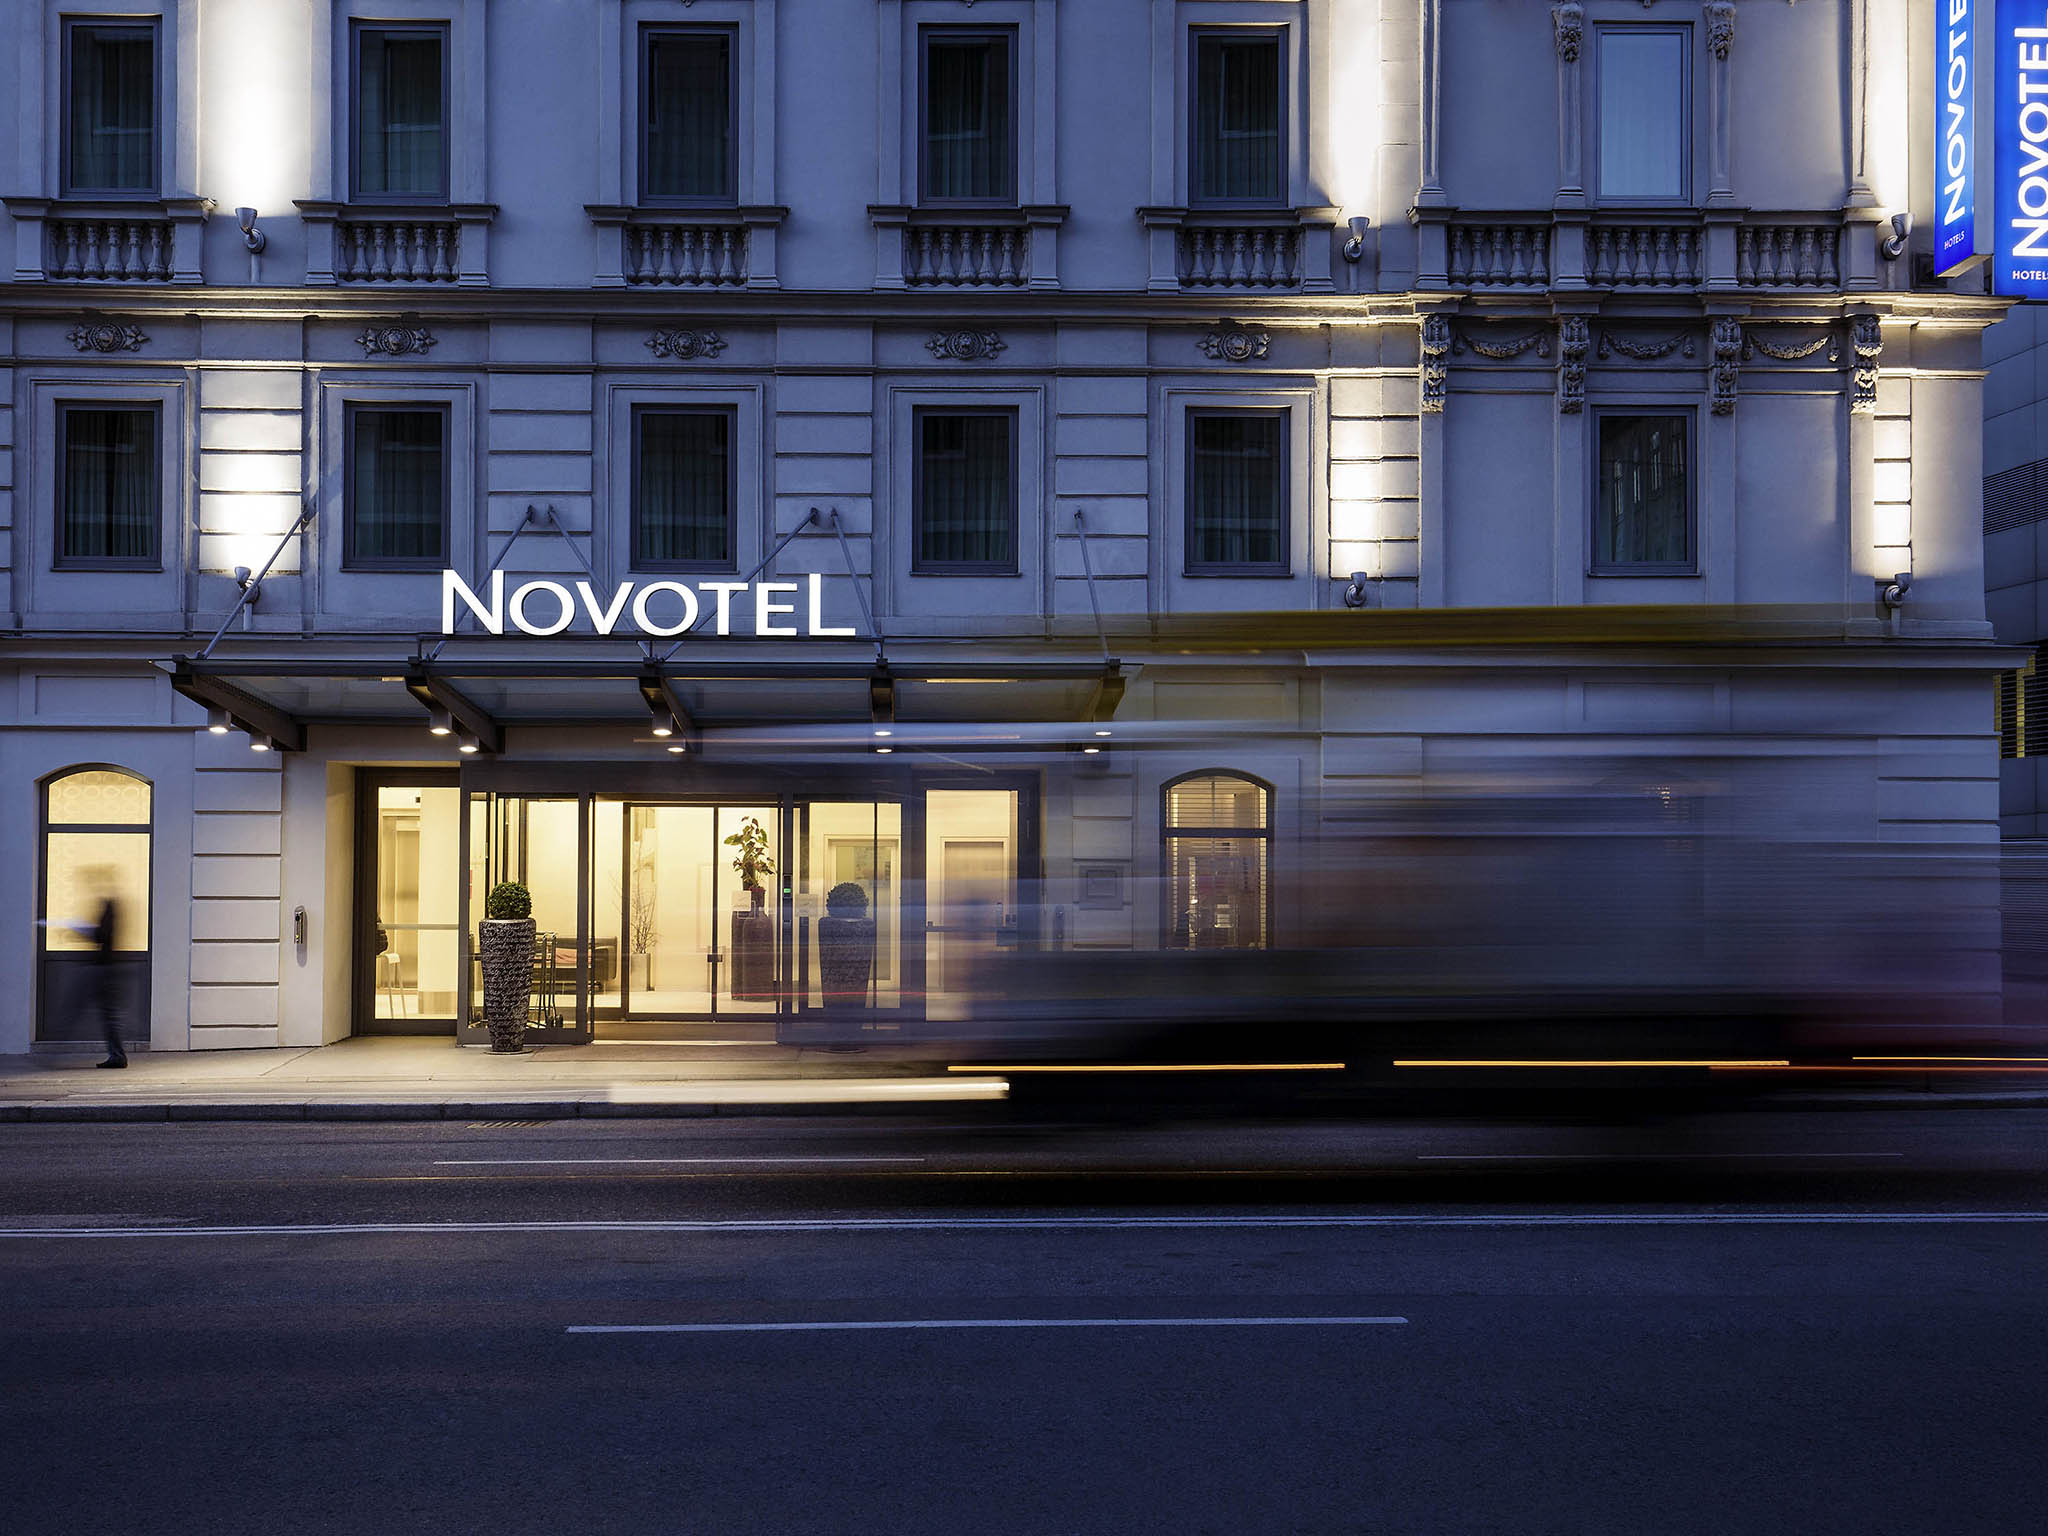 Novotel Wien City - Hotel Vienna 1020 Accor